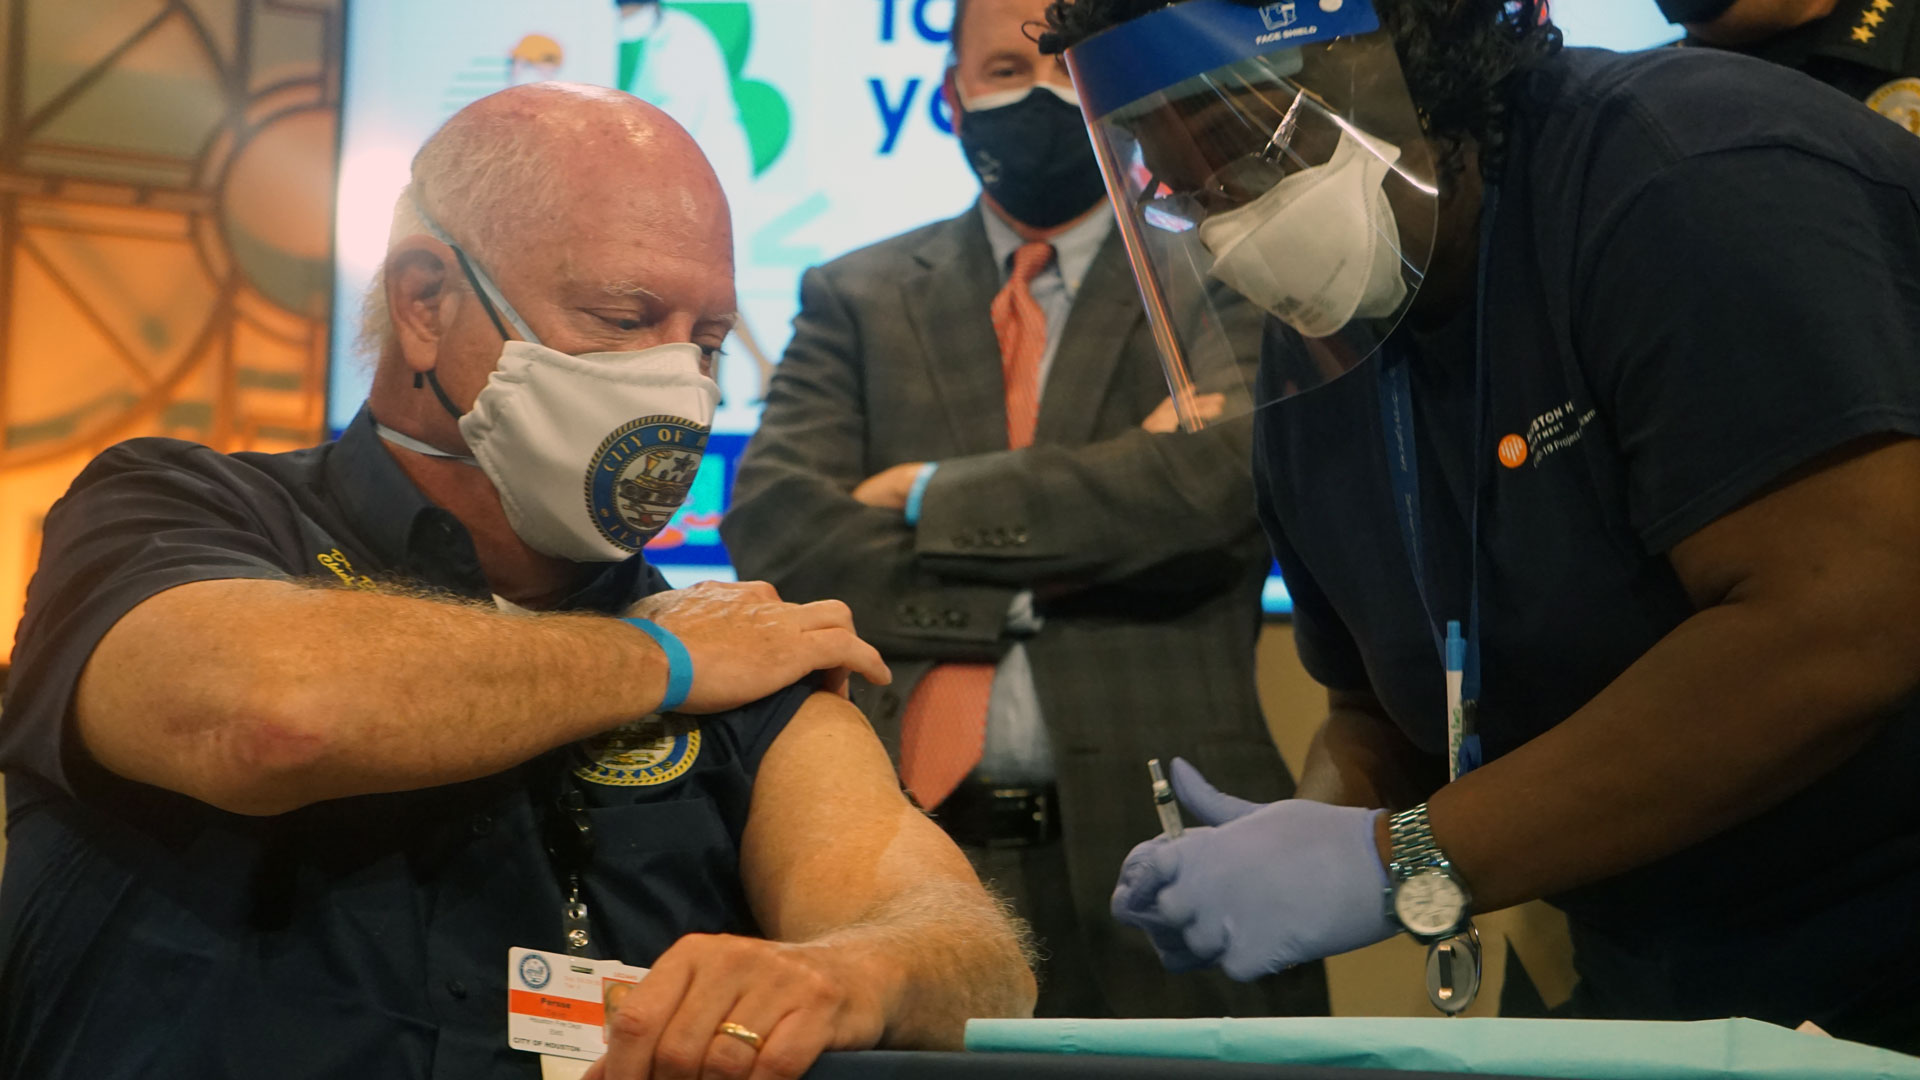 Image of person getting COVID-19 vaccination.